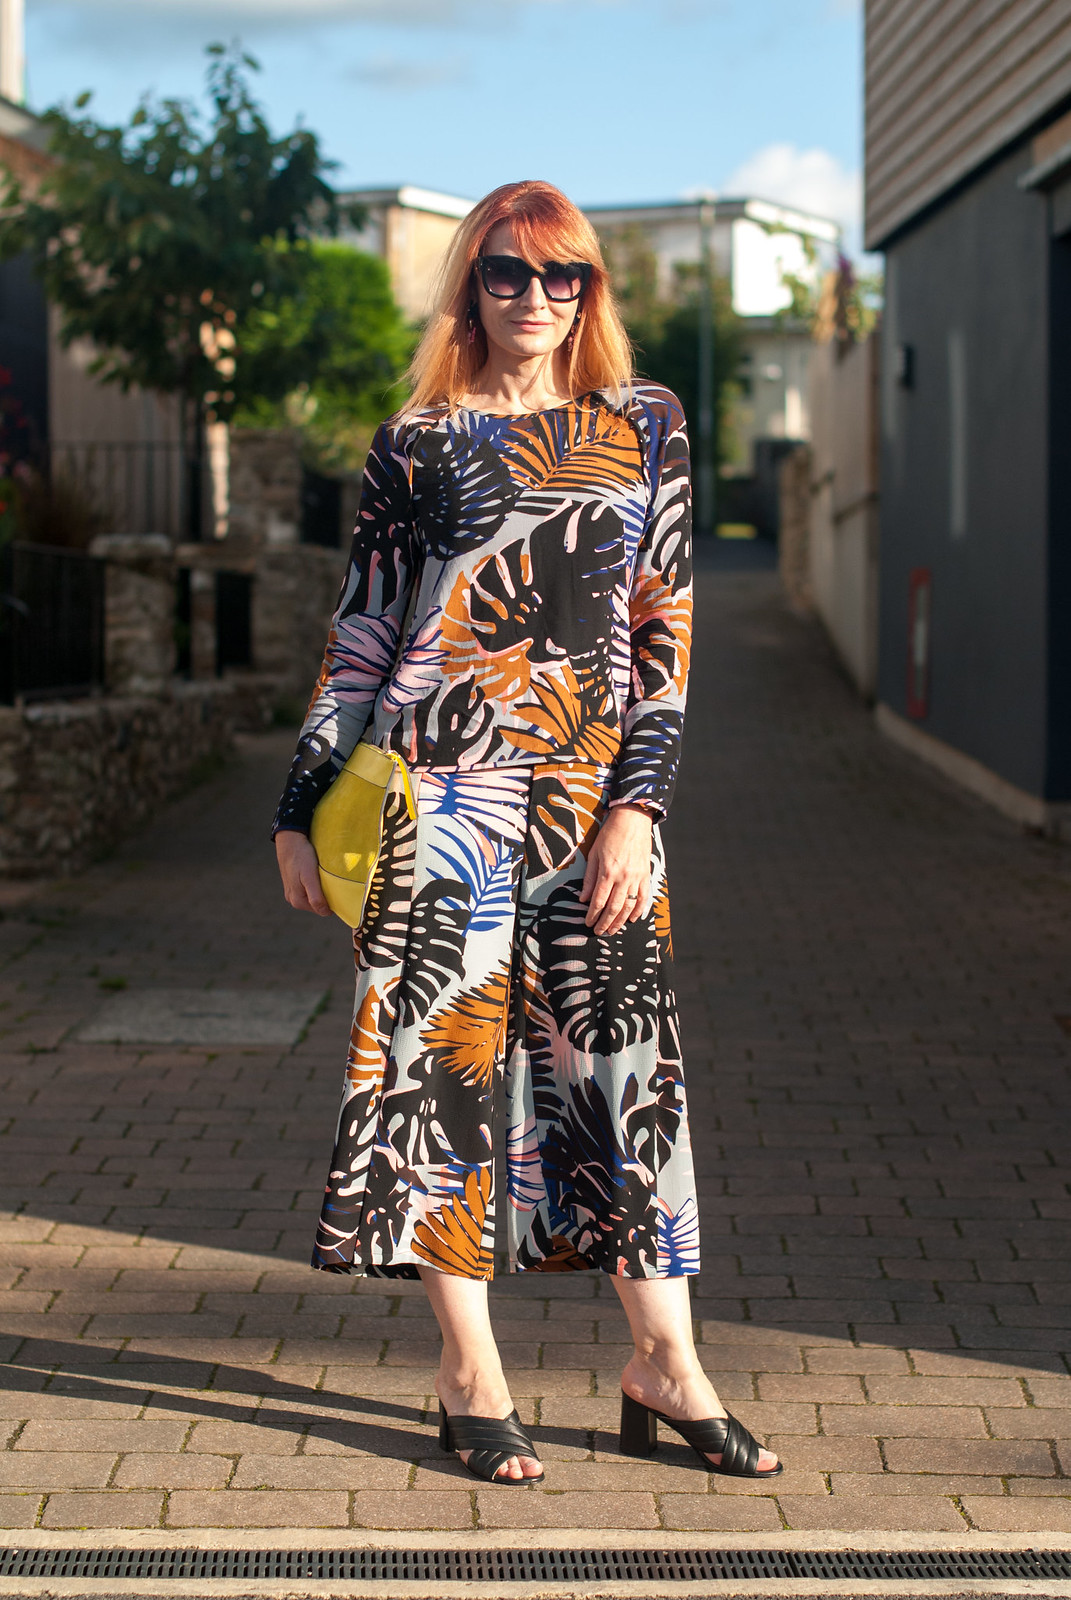 Late summer outfits - Palm print co-ords: Long sleeve top and wide leg crop trousers culottes pants \ yellow suede clutch bag \ black crossover block heel mule sandals \ statement oversized earrings \ cat eye sunglasses | Not Dressed As Lamb, over 40 style